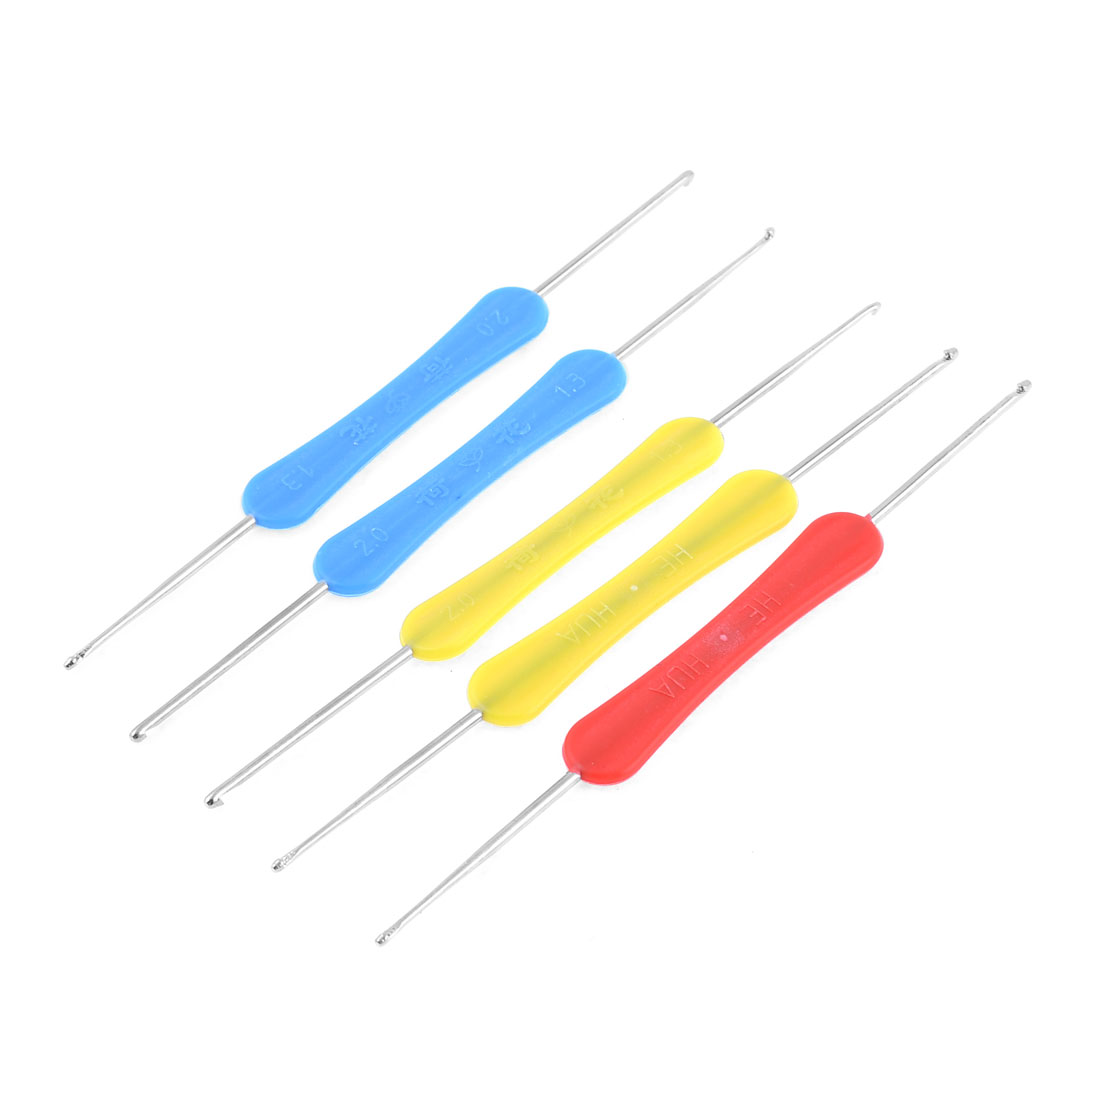 5 Pcs Yellow Blue Red Plastic Handle Metal Double Head Crochet Needles Hook